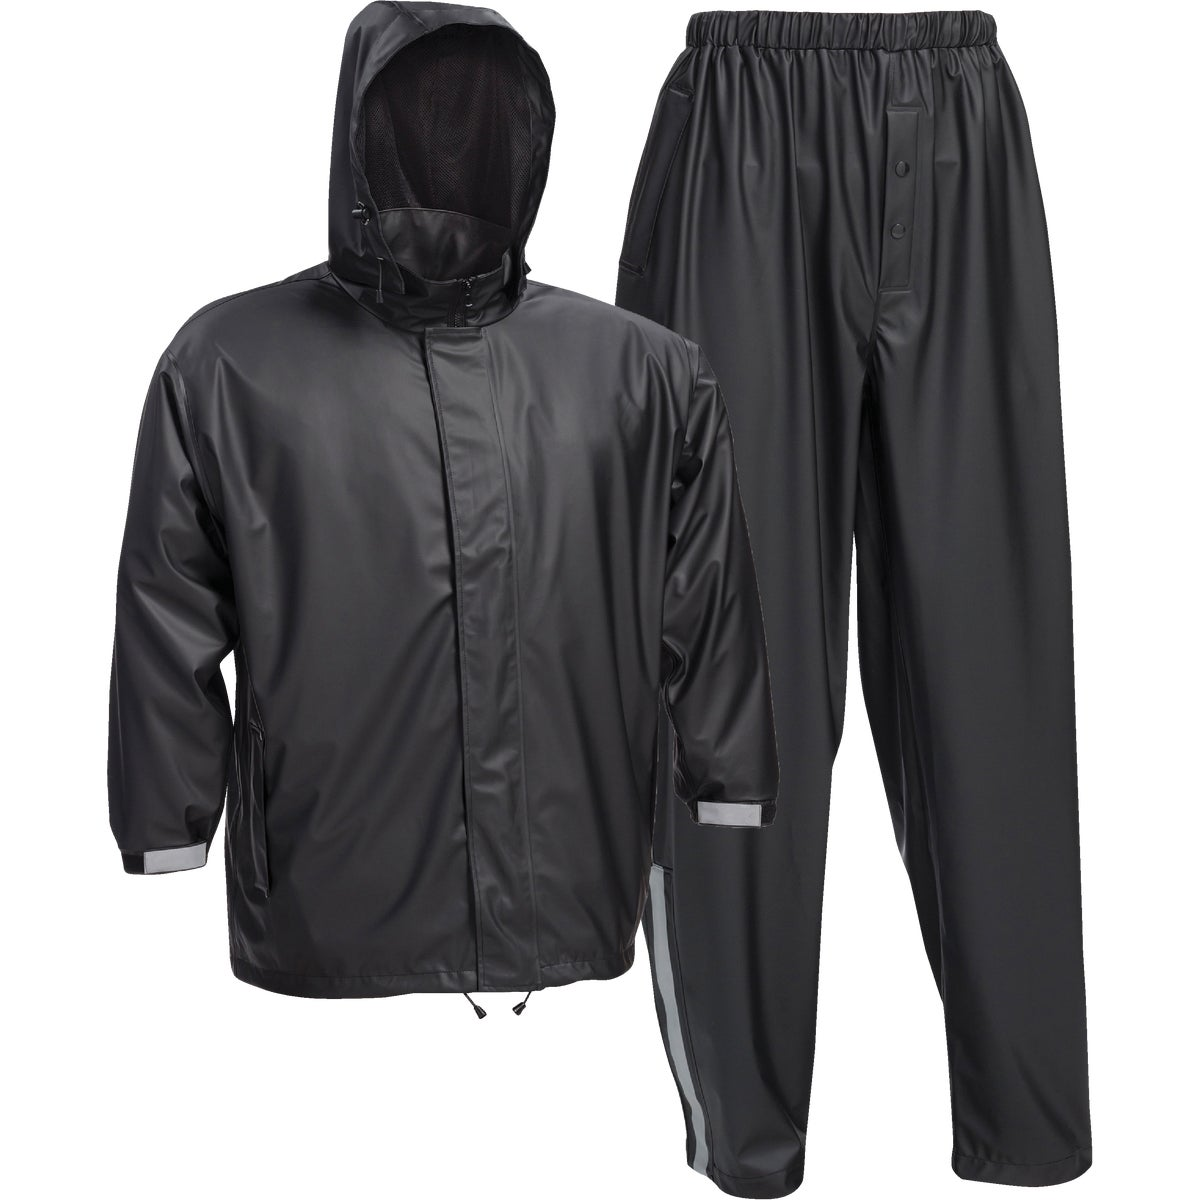 XL BLK NYLON RAINSUIT - R103X by Custom Leathercraft